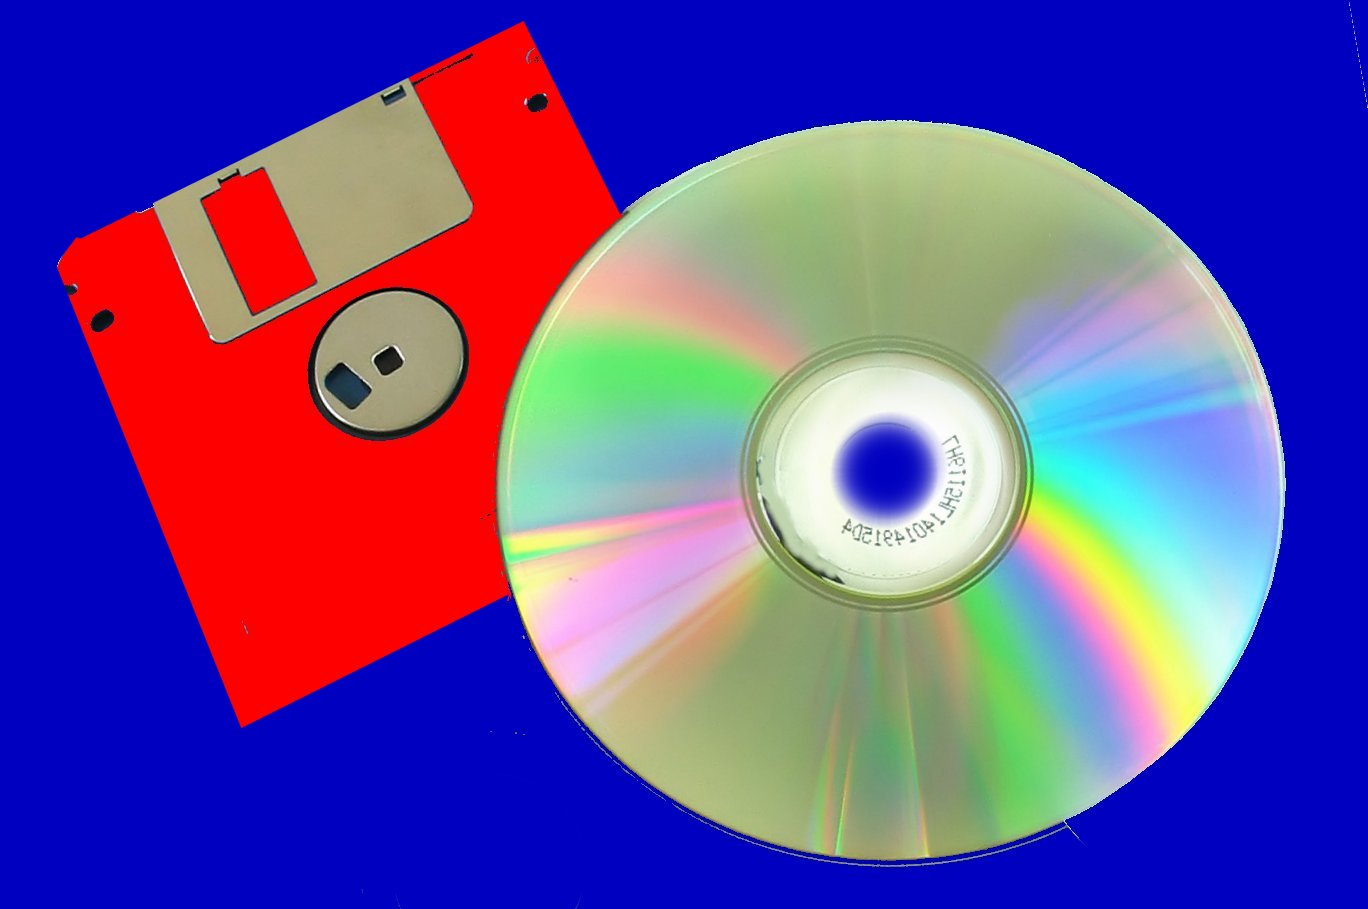 A red Floppy disk and a CD.